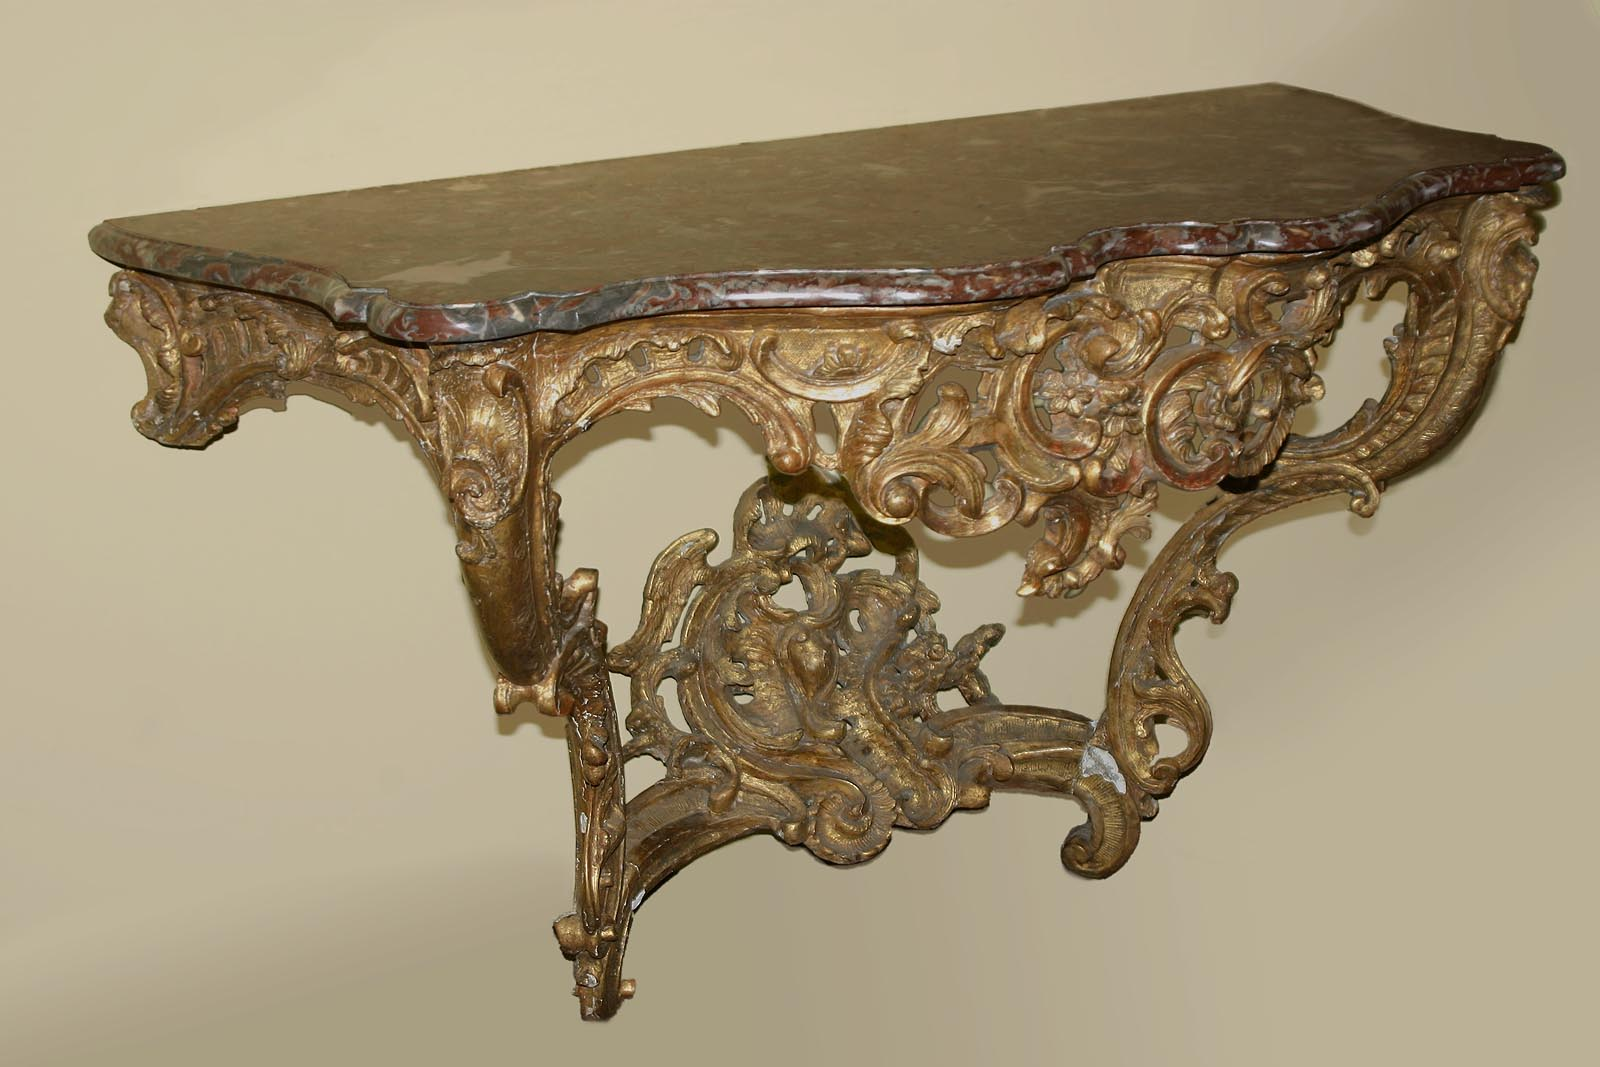 Very fine, French, Louix XV period, giltwood console table